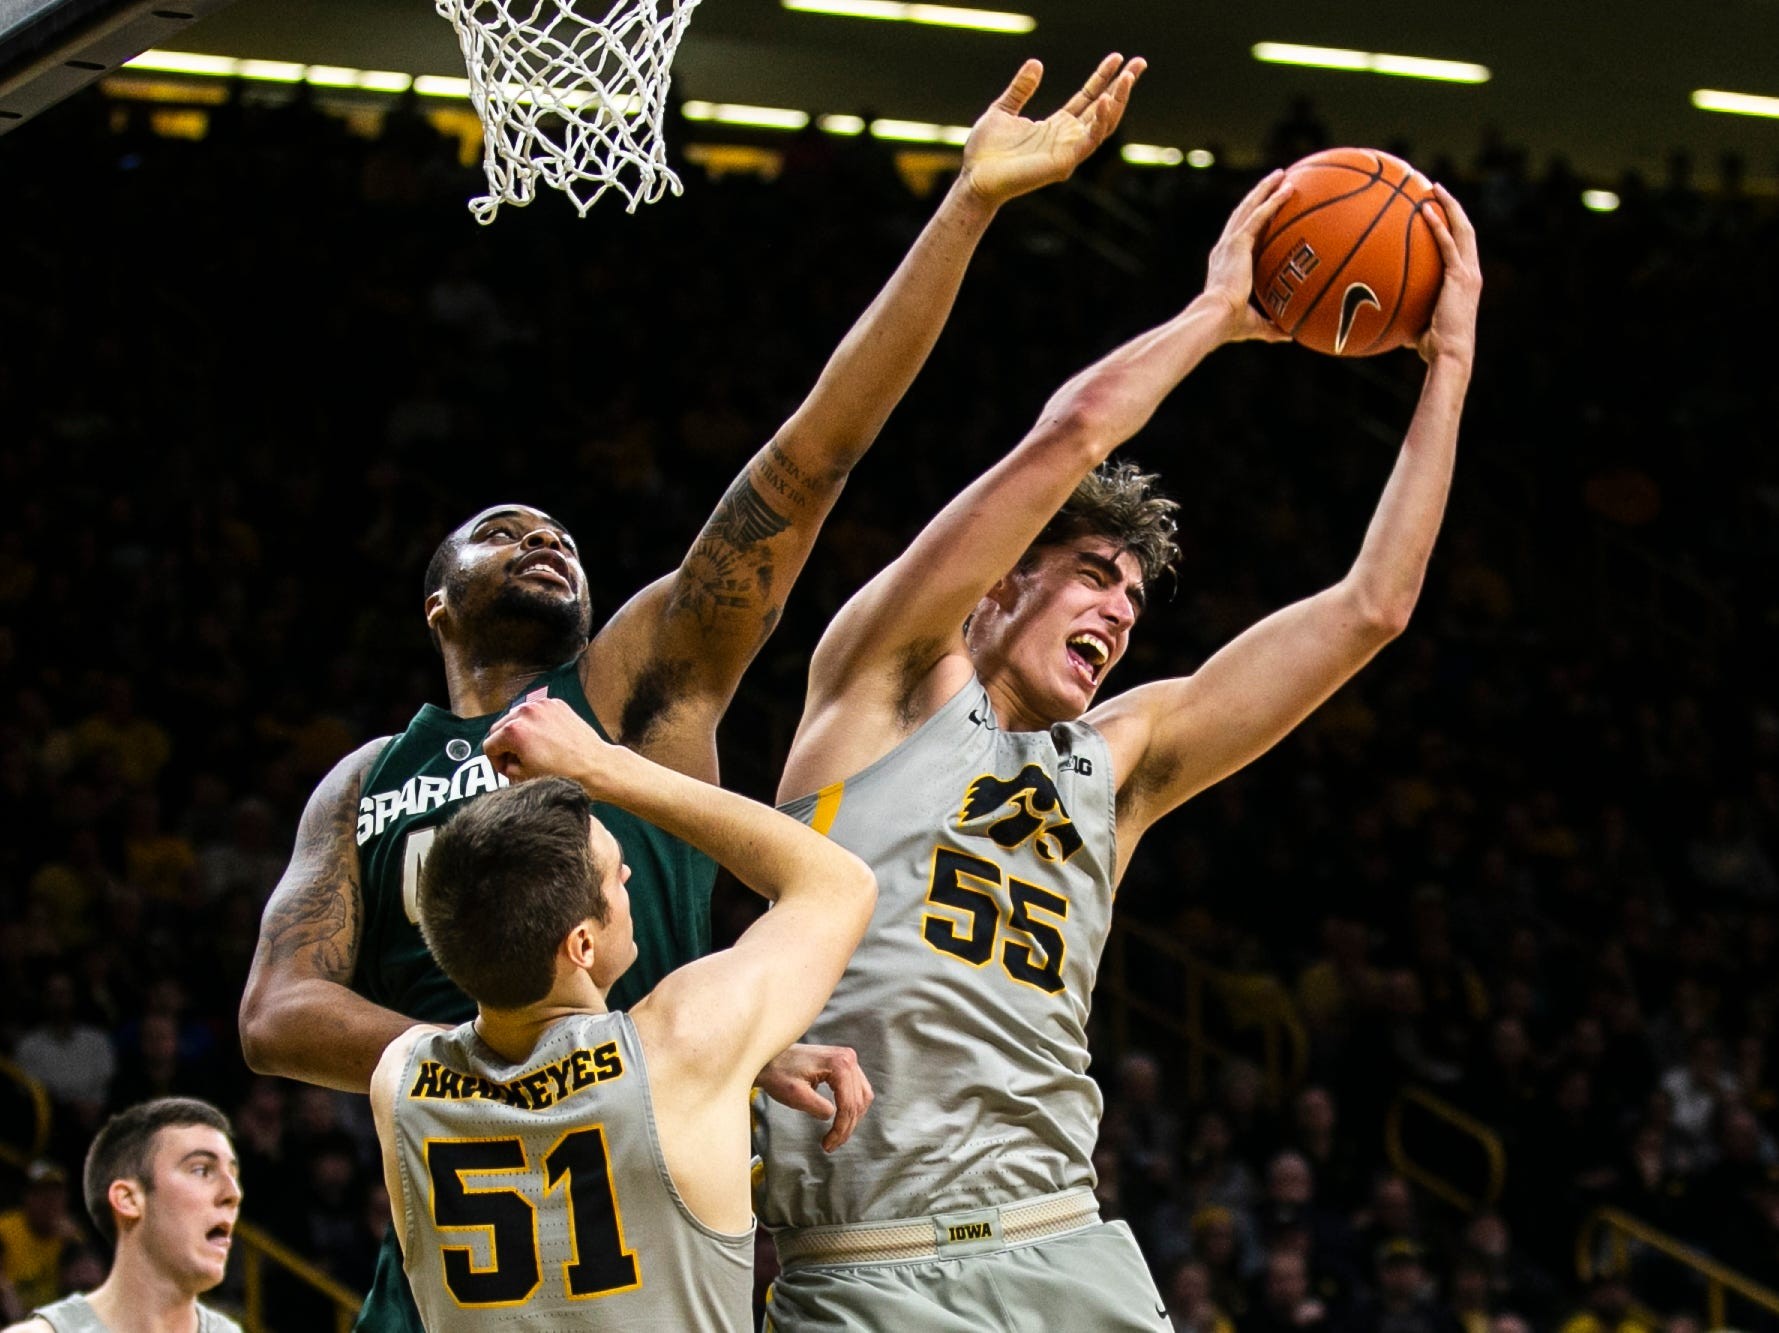 Iowa forward Luka Garza (55) pulls down a rebound during a NCAA Big Ten Conference men's basketball game on Thursday, Jan. 24, 2019, at Carver-Hawkeye Arena in Iowa City, Iowa.